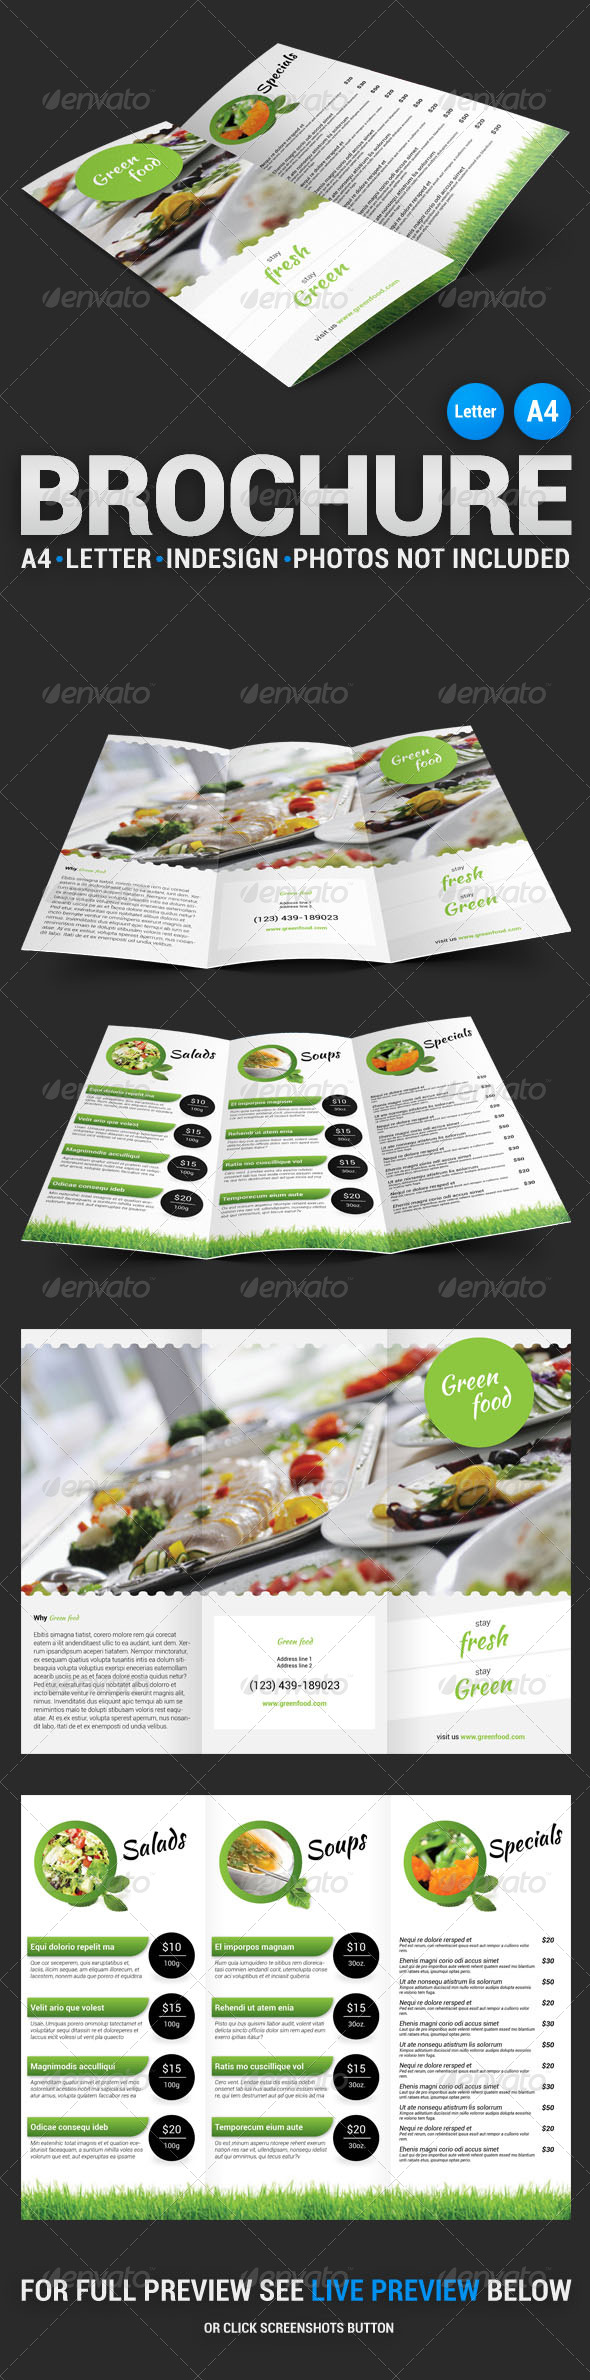 Green Food Tri-Fold Brochure - Food Menus Print Templates